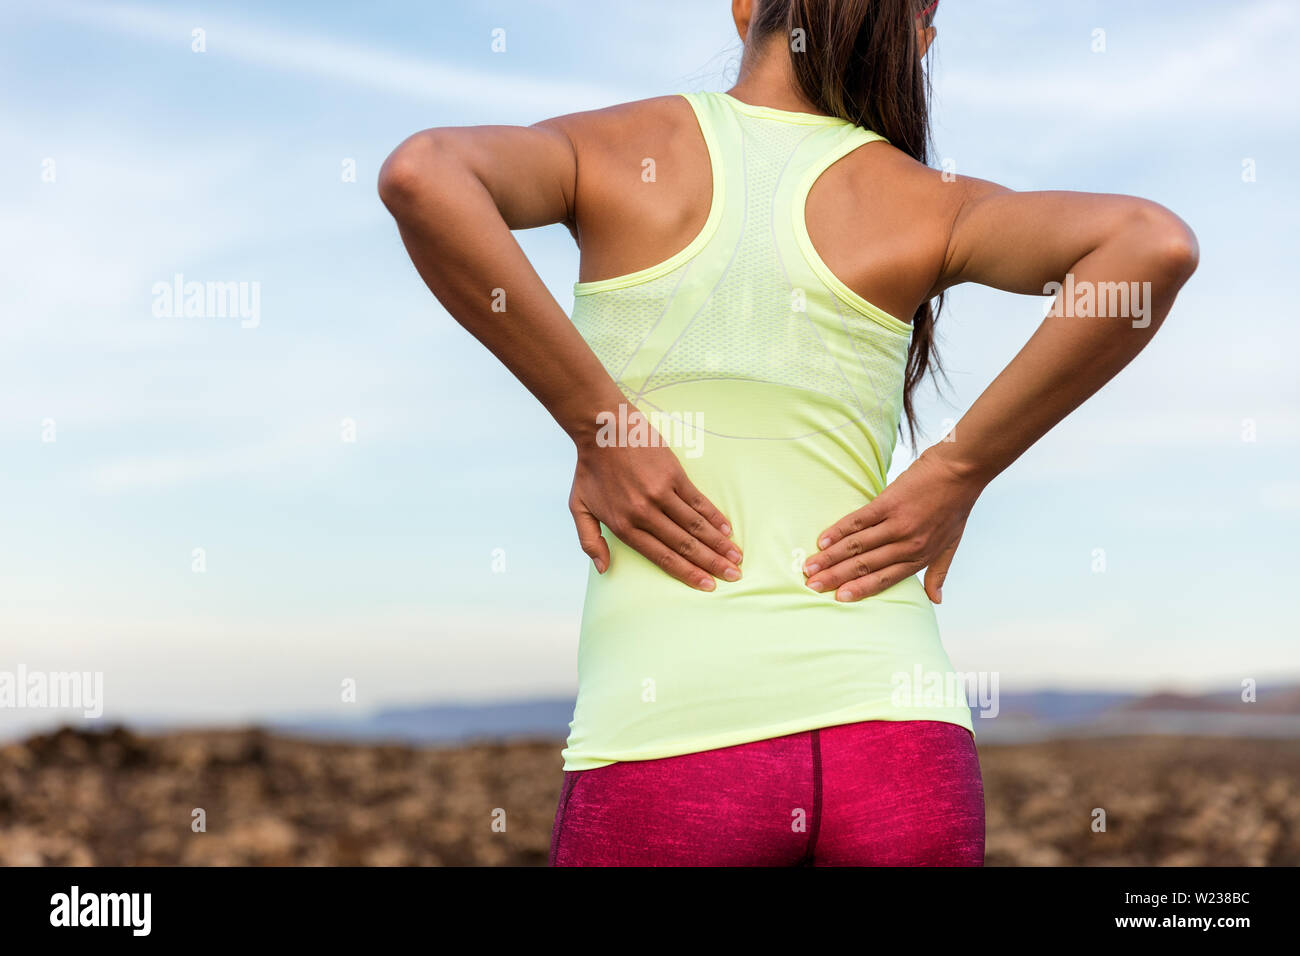 Trail running runner with painful lower back pain injury or strained muscle near the spine. Female athlete from behind on outdoor run pressing body with hands for muscles cramping soreness. - Stock Image